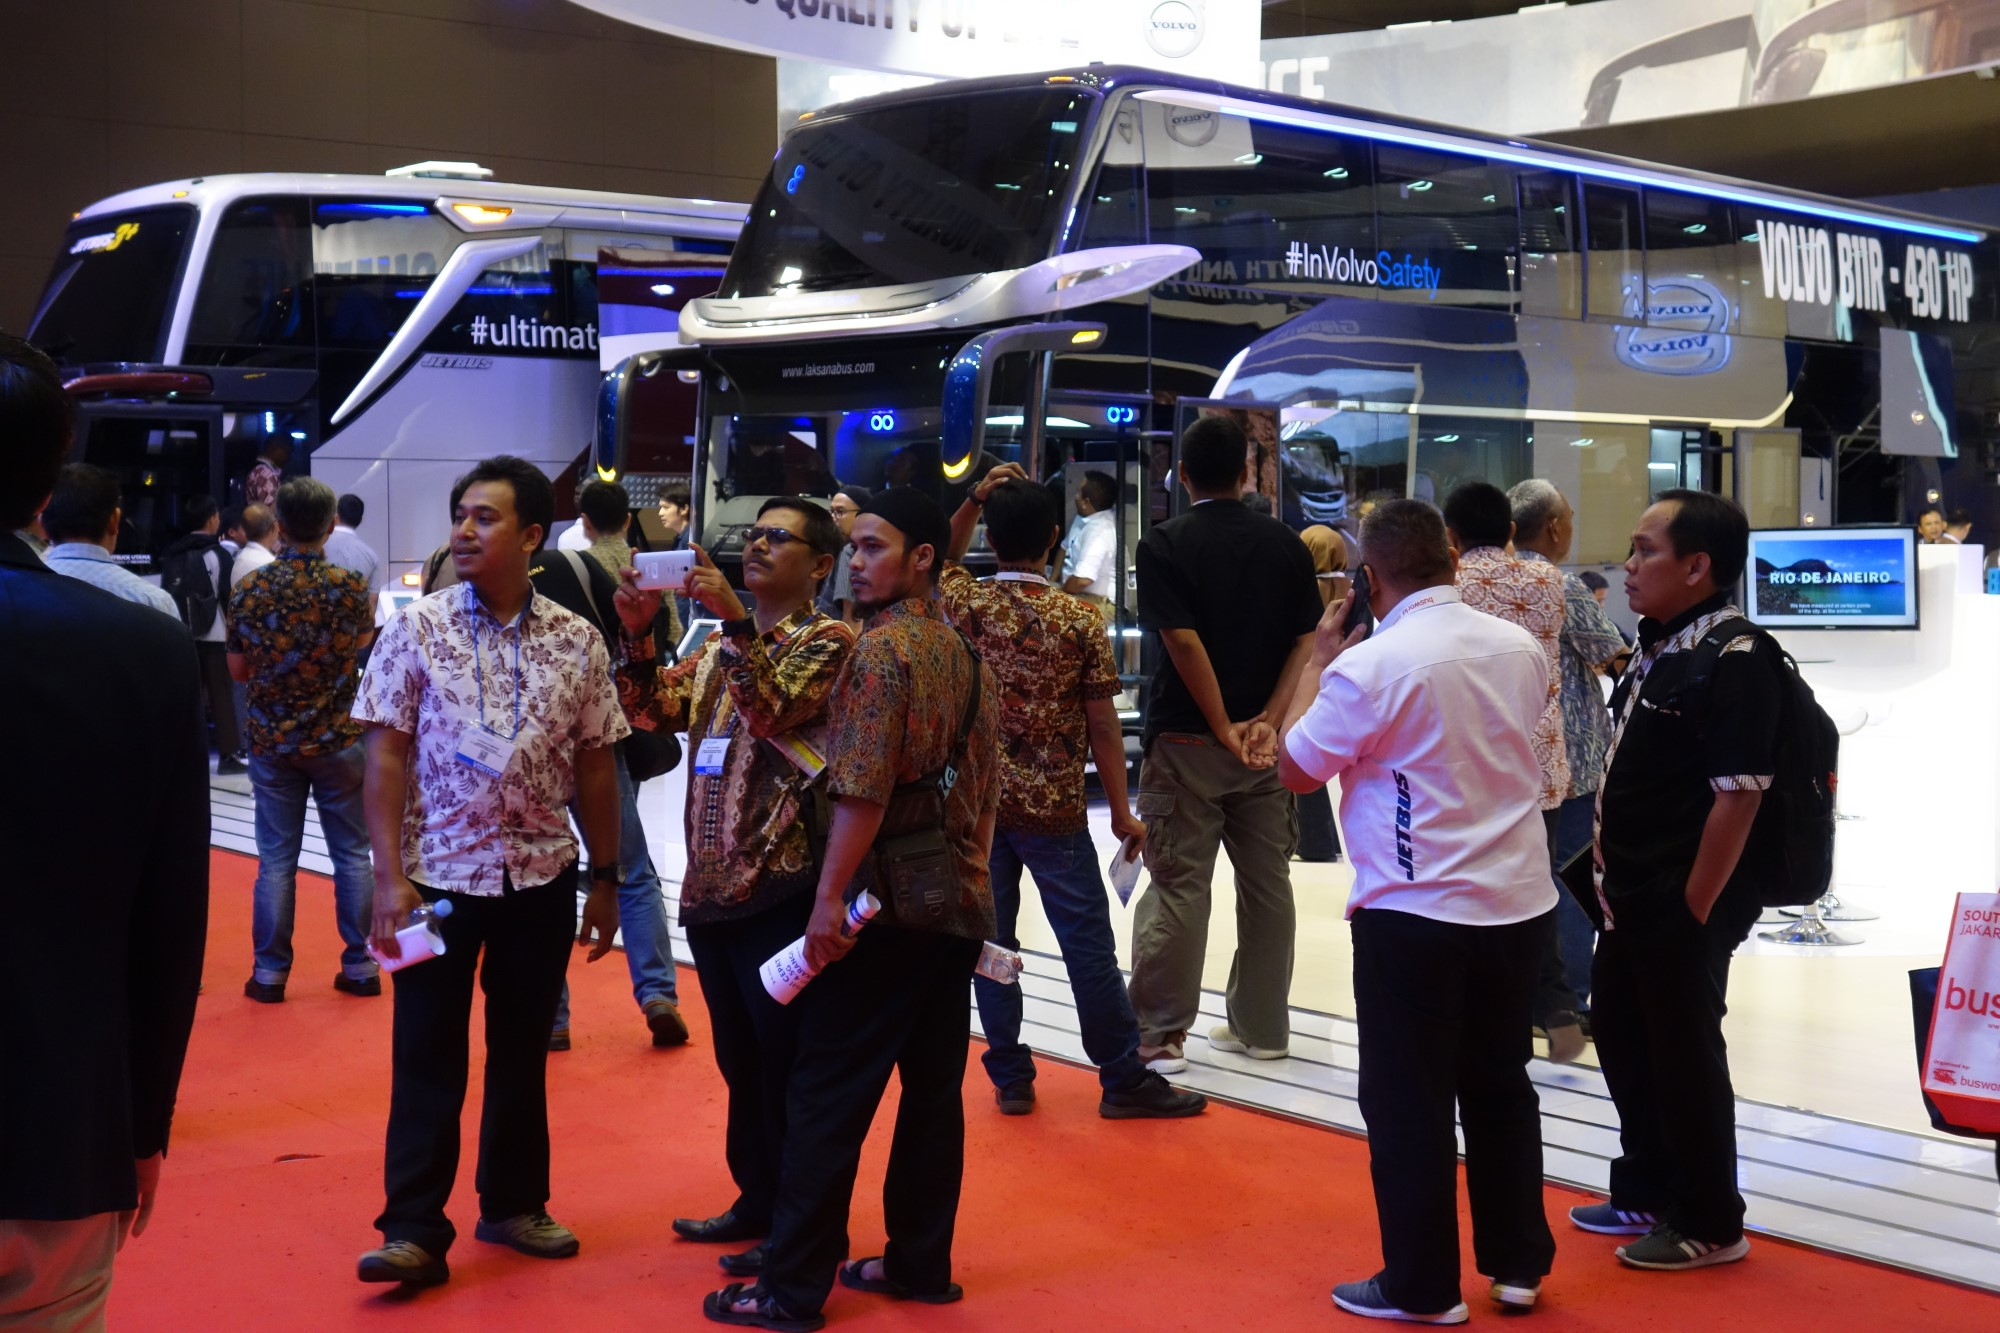 Atmosphere at Busworld SEA